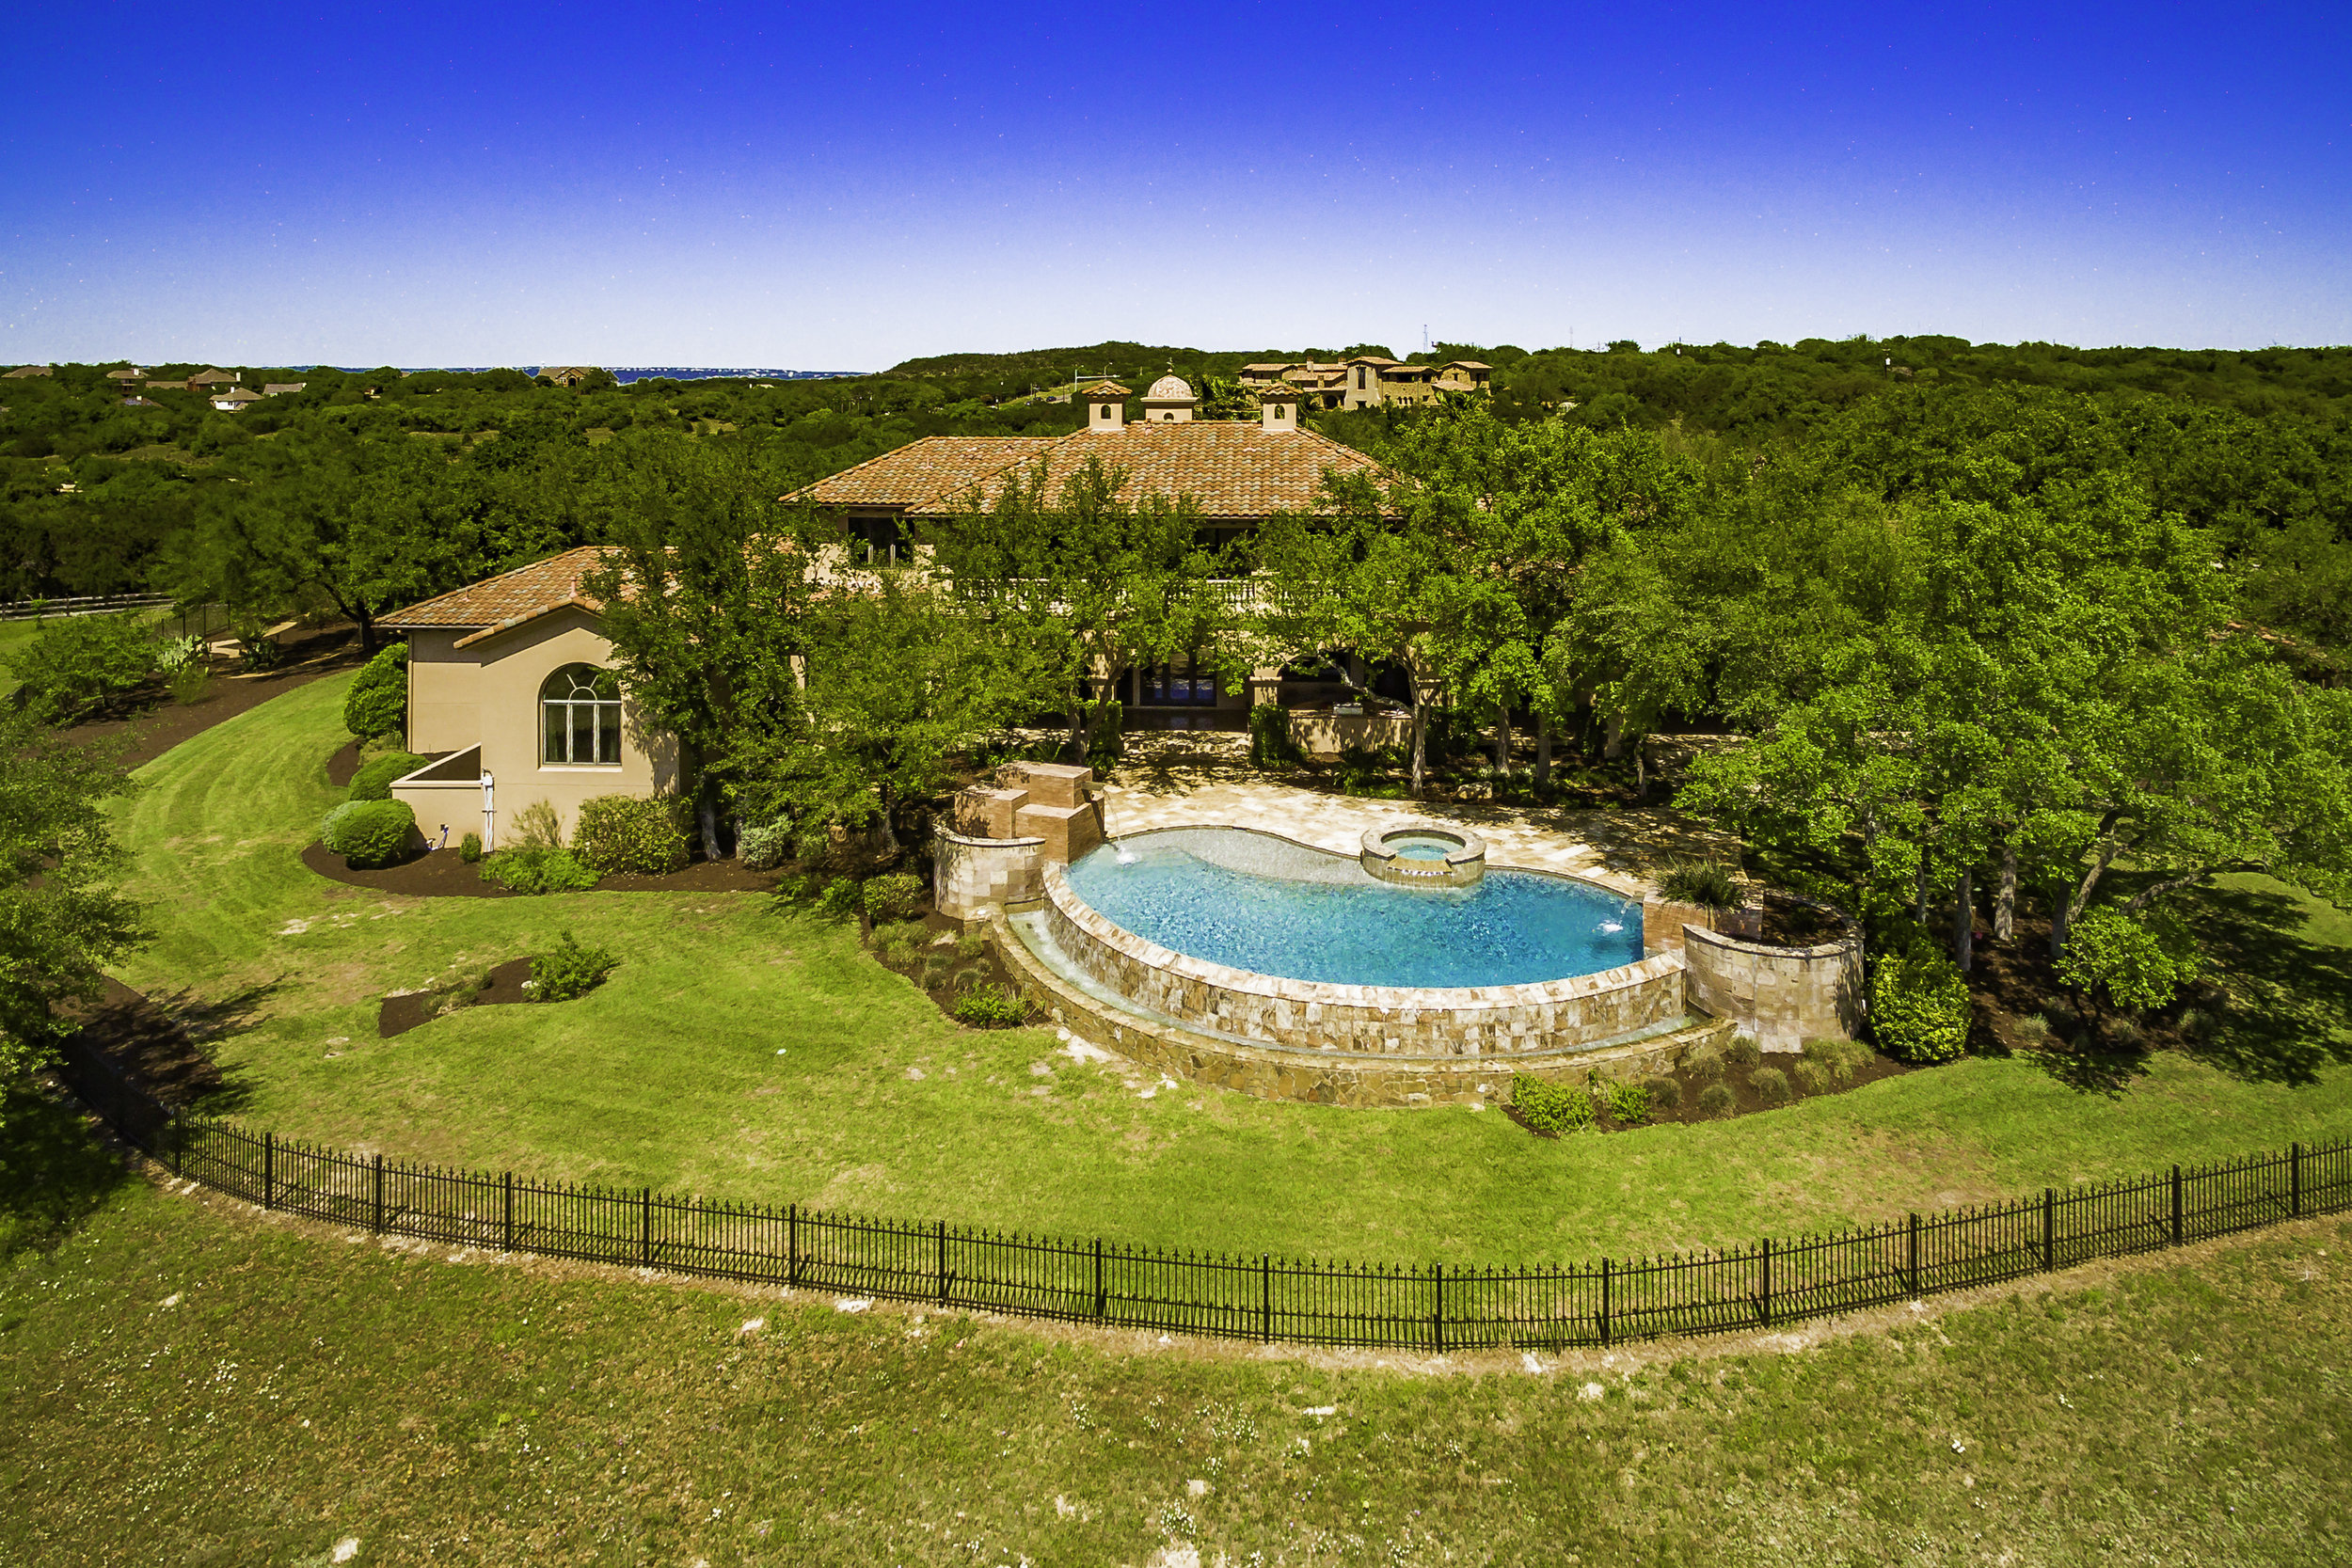 2502 Dominion Hill Aerial - Valerie DiFabio - April 2019-15.jpg